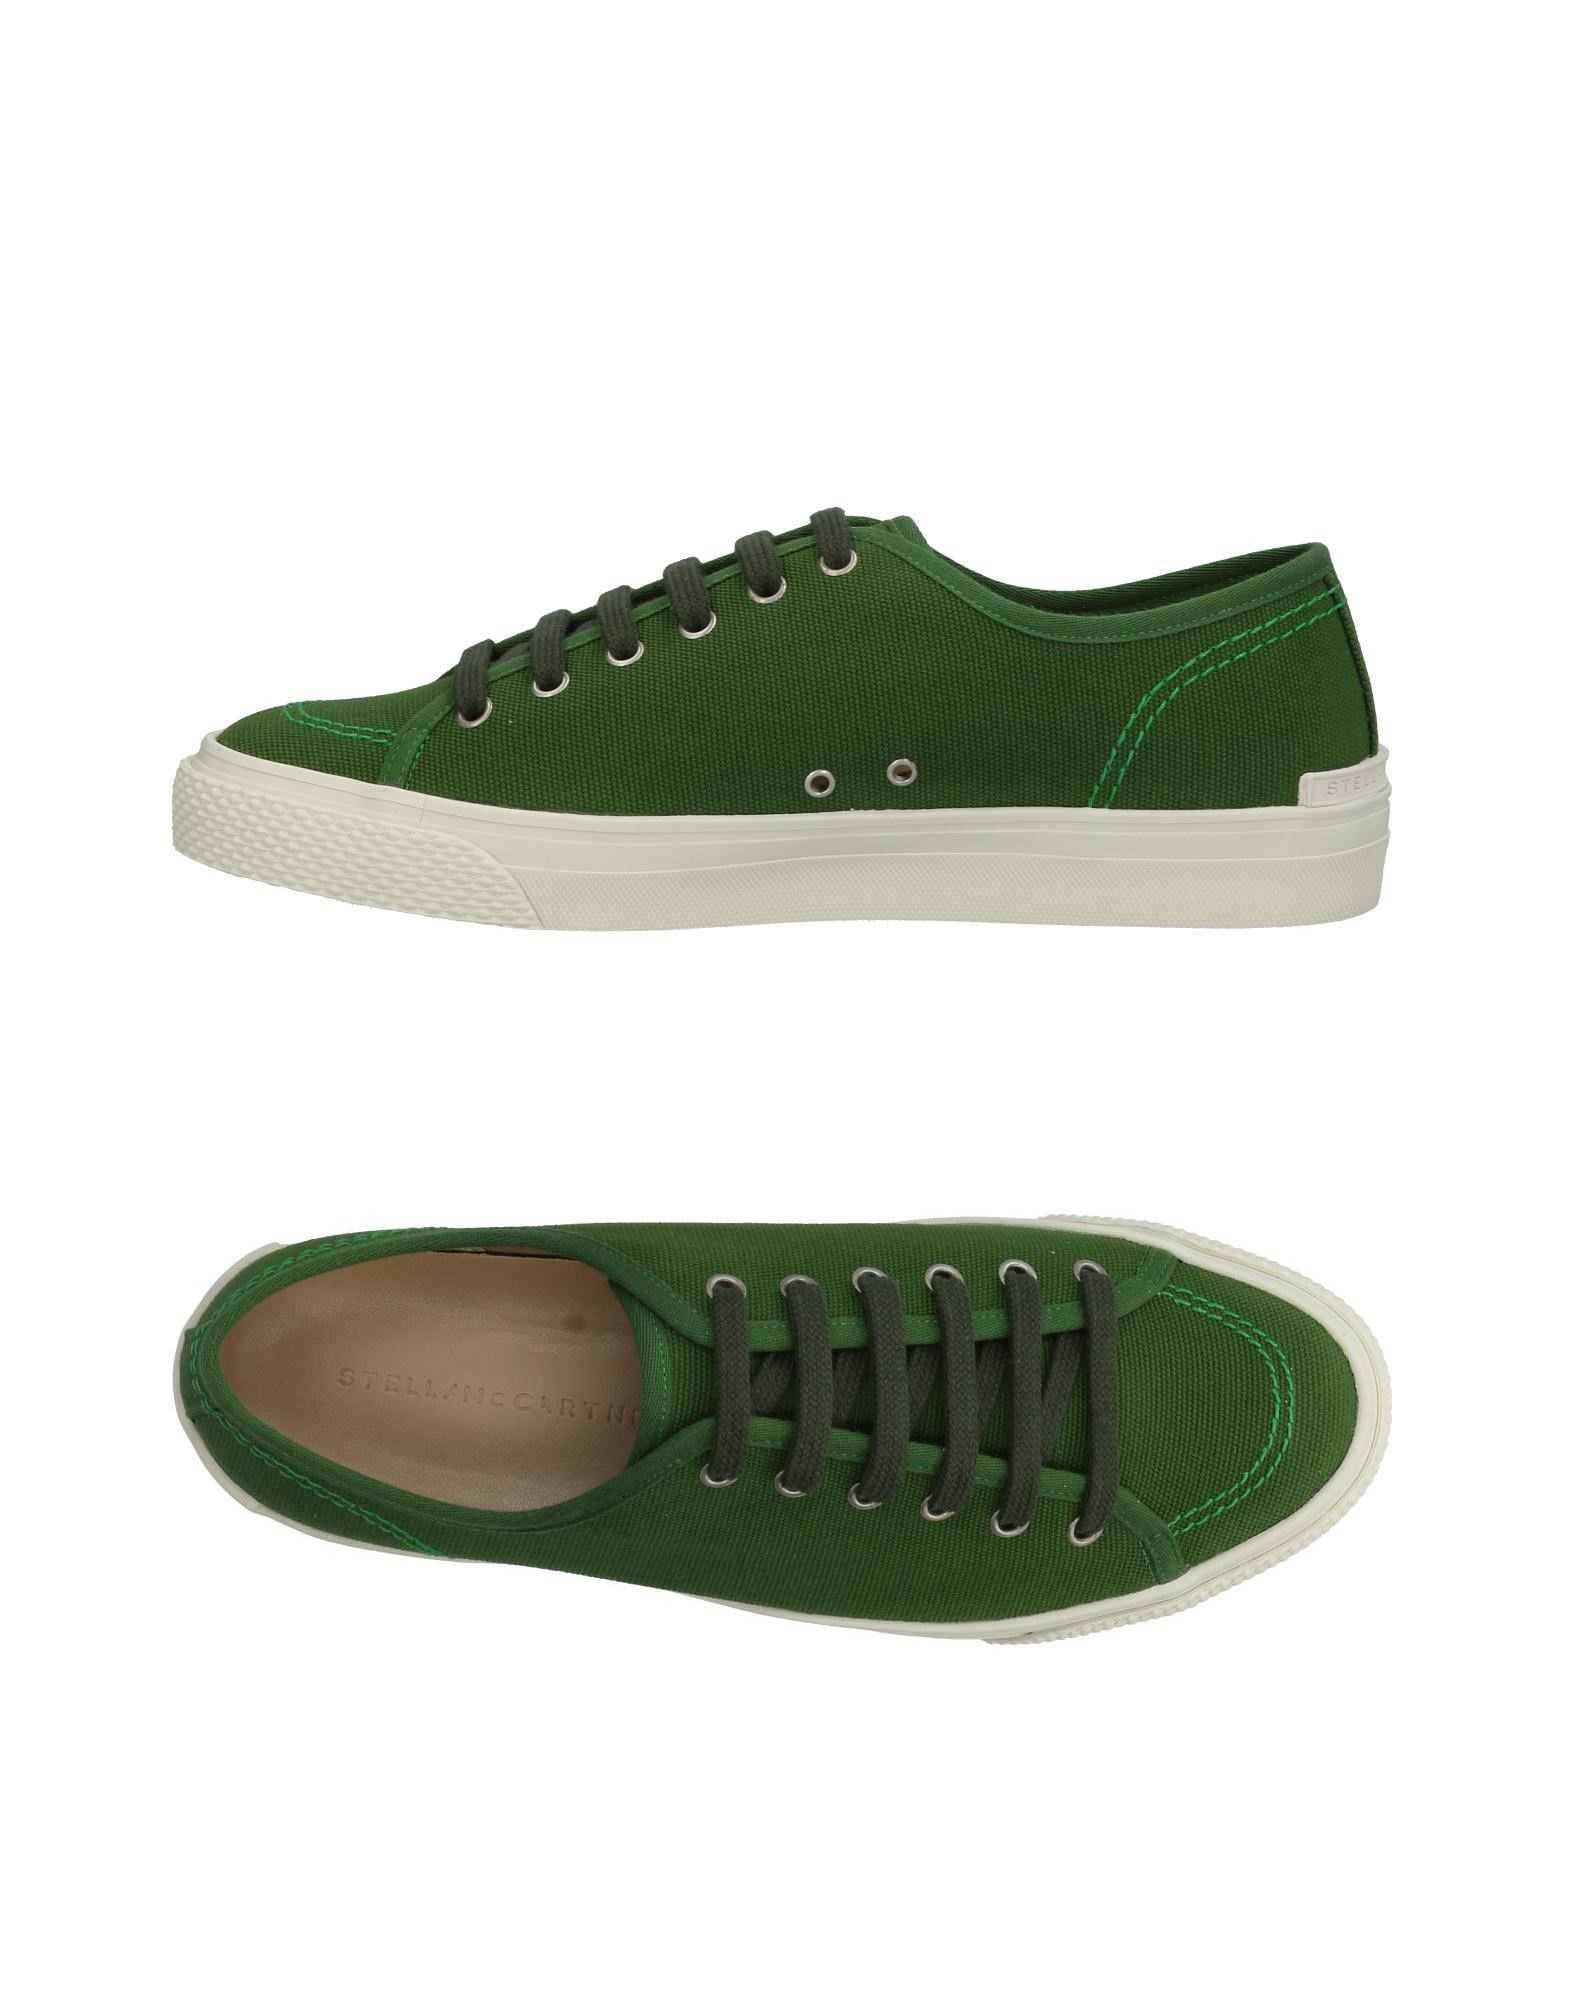 STELLA McCARTNEY MEN Sneakers. canvas, logo, solid color, laces, round toeline, flat, fabric inner, rubber sole. Textile fibers